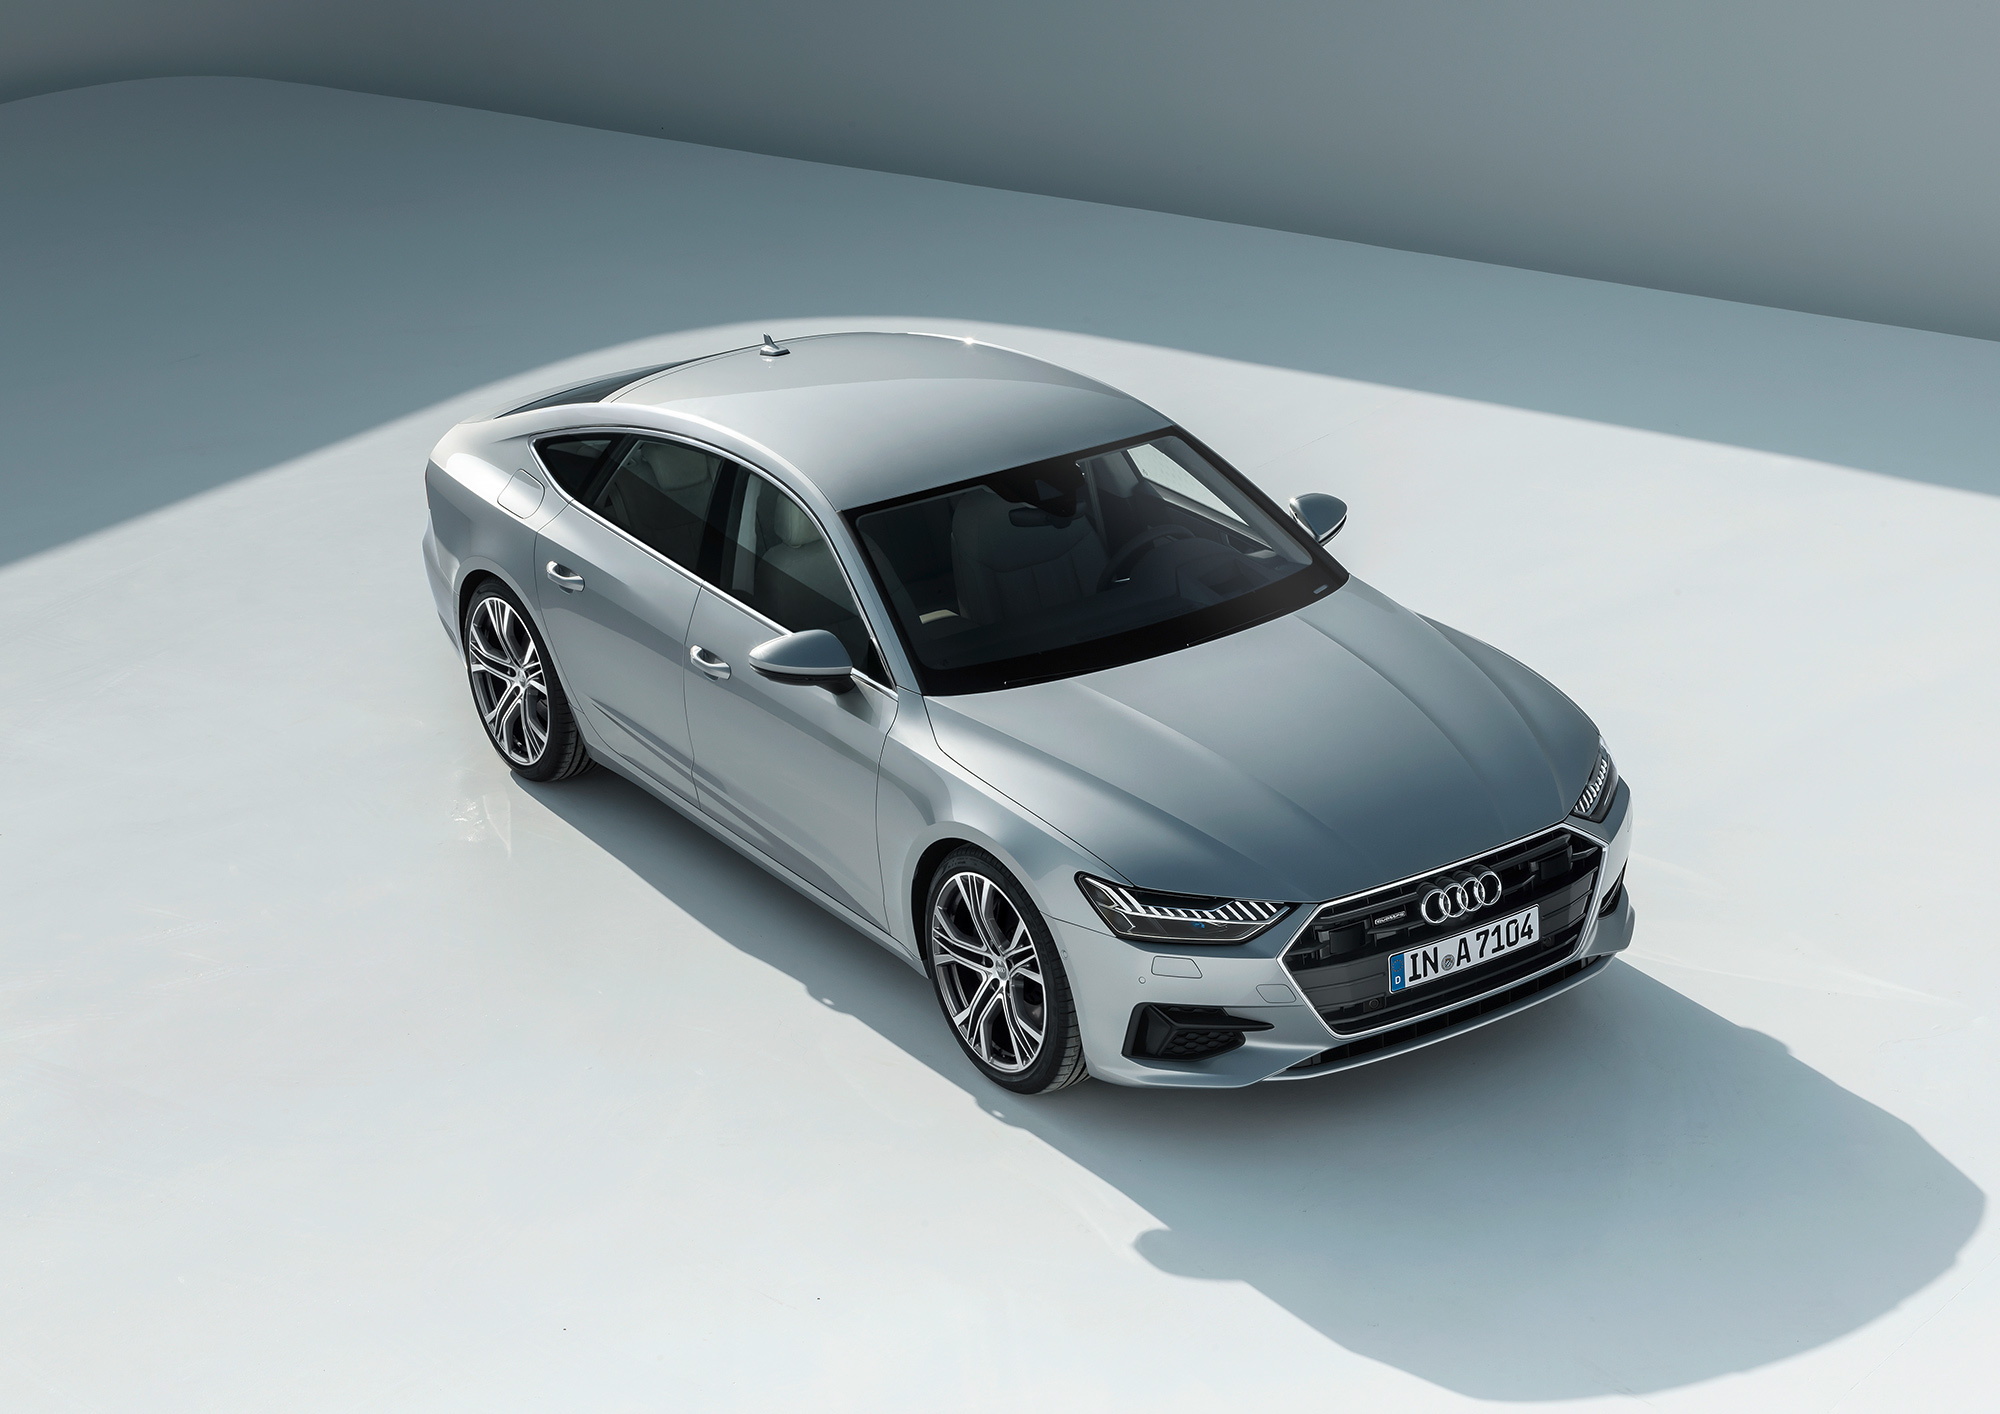 Audi A7 Sportback Background